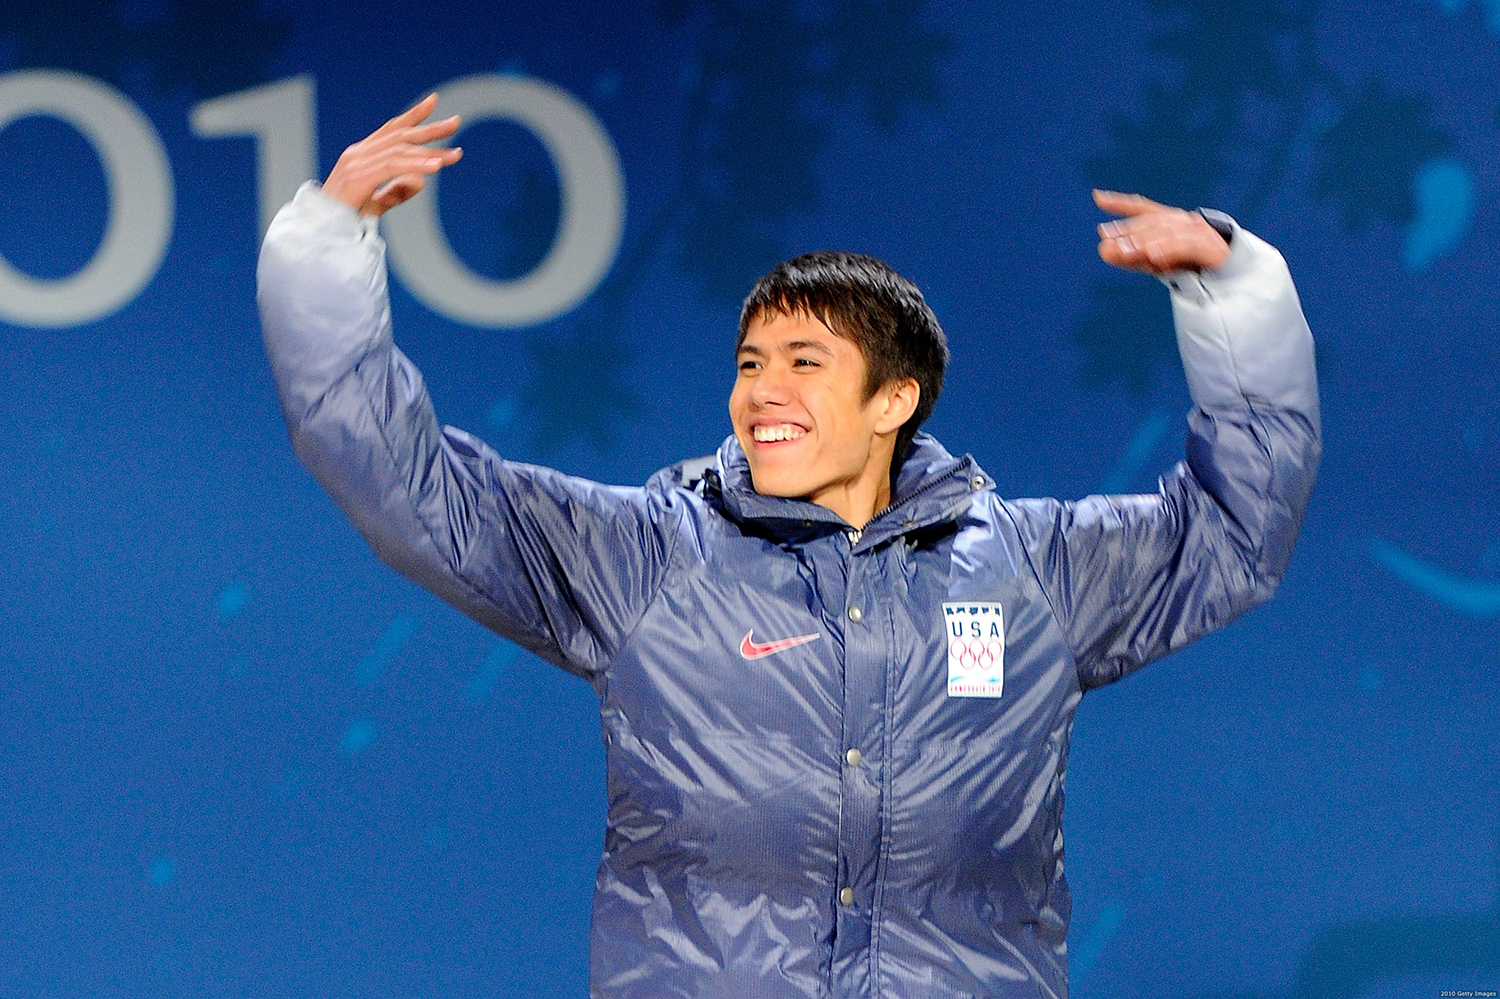 J.R. Celski, the first and so far, lone part-Filipino winter Olympian with medals to his name (bronze in the 1500m short-track race; and another bronze as part of the 5000m US men's relay team; both Vancouver 2010.) Will he repeat for medals in Sochi?  (Source: Getty Images / Photo byKevork Djansezian)